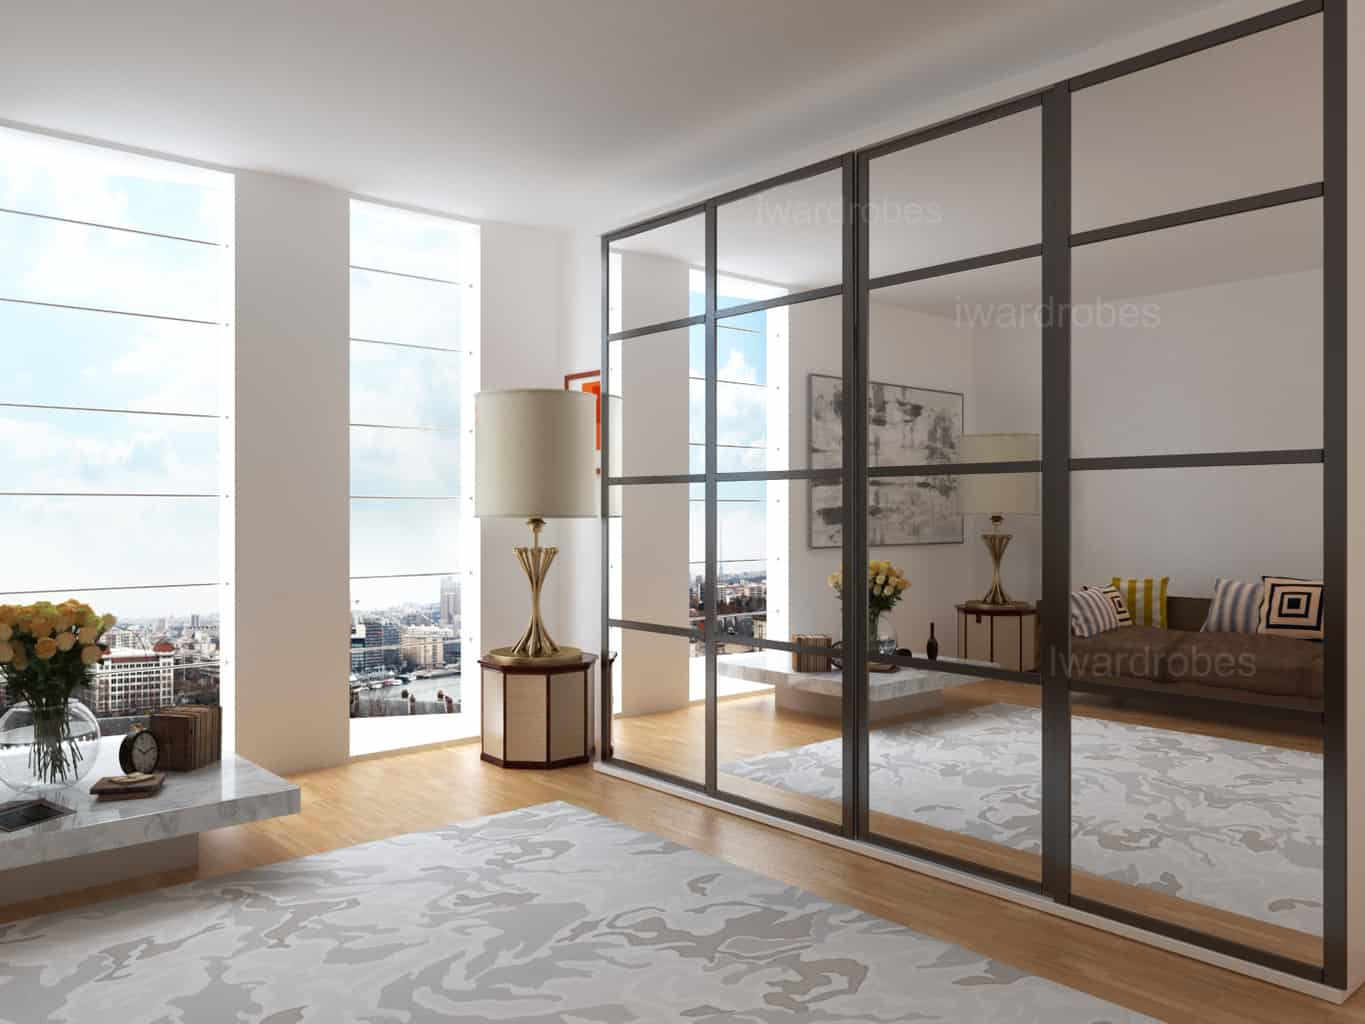 Sliding Wardrobes London - Sliding Door Wardrobes ...